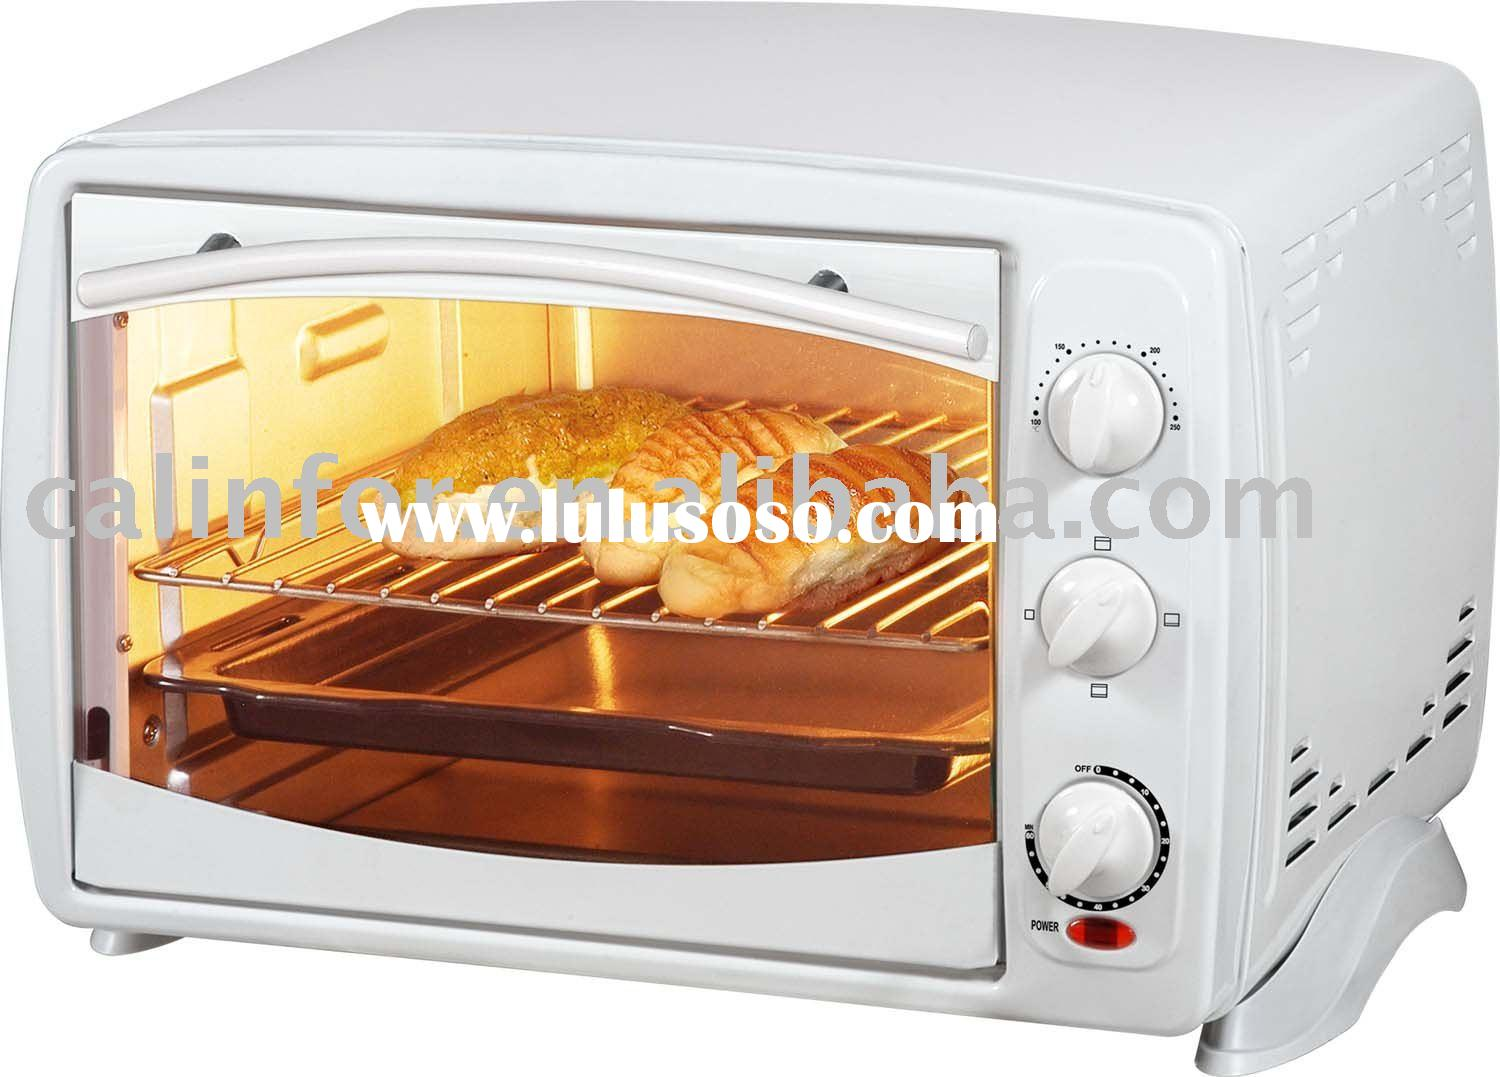 18L Electric Oven/A12 Oven/Rotisserie Oven